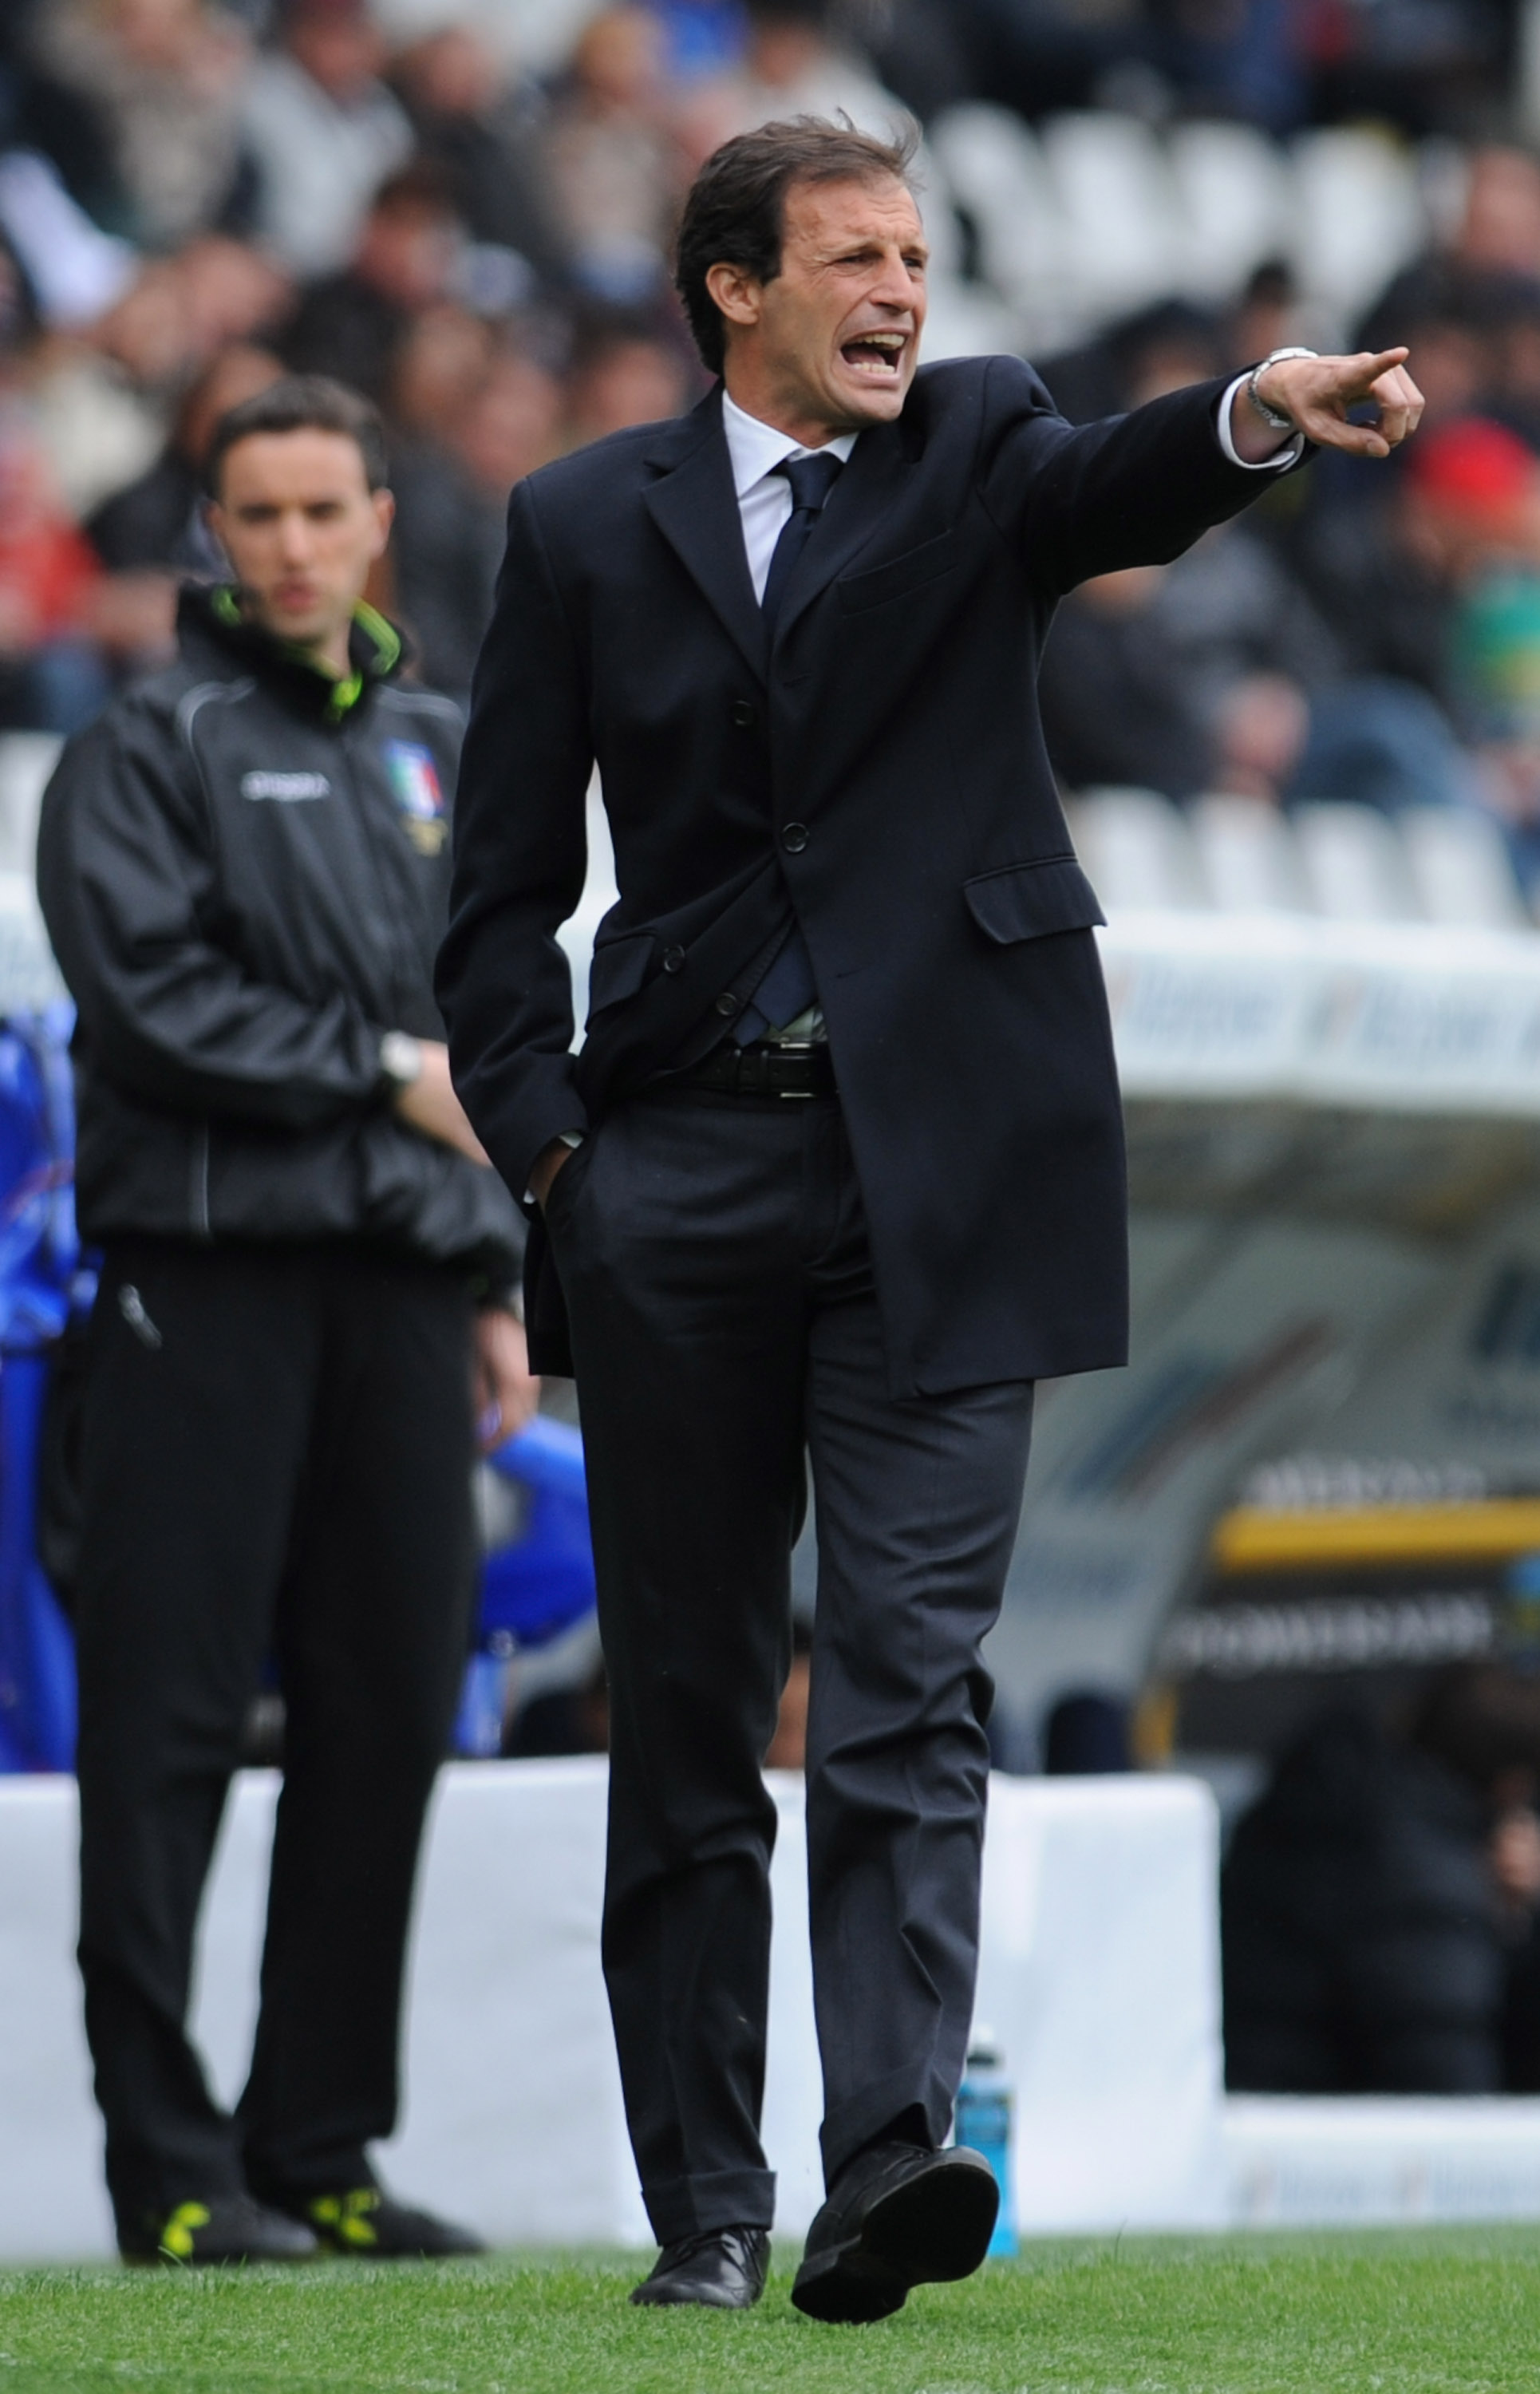 TURIN, ITALY - APRIL 11:  Cagliari Calcio head coach Massimiliano Allegri issues instructions during the Serie A match between Juventus FC and Cagliari Calcio at Stadio Olimpico on April 11, 2010 in Turin, Italy.  (Photo by Valerio Pennicino/Getty Images)